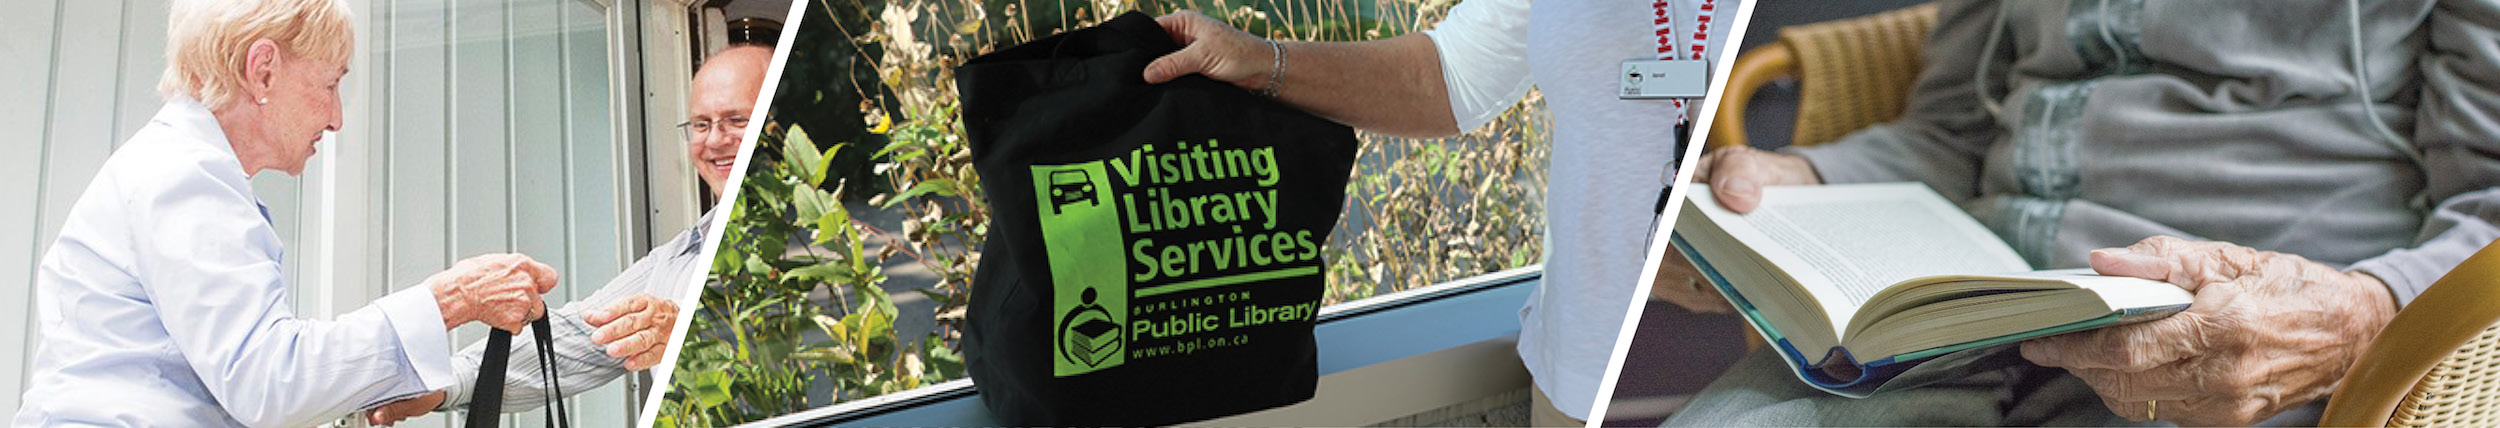 Currently suspended due to COVID, VSL provides library services outside of our branches.